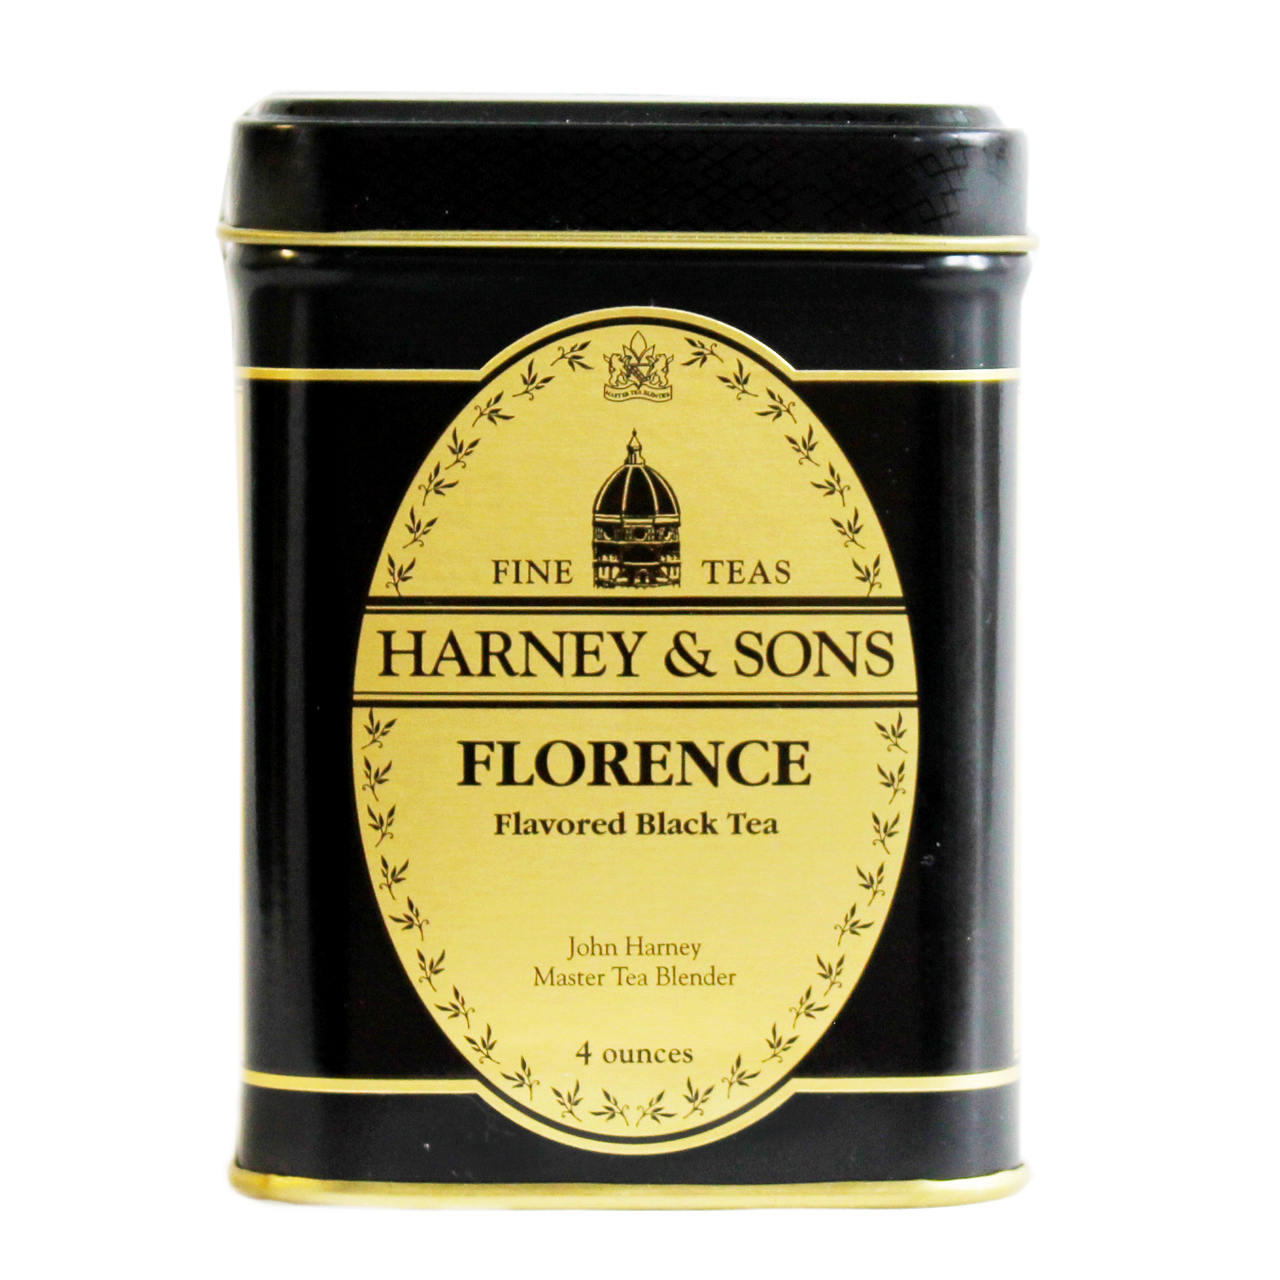 Harney & Sons Florence